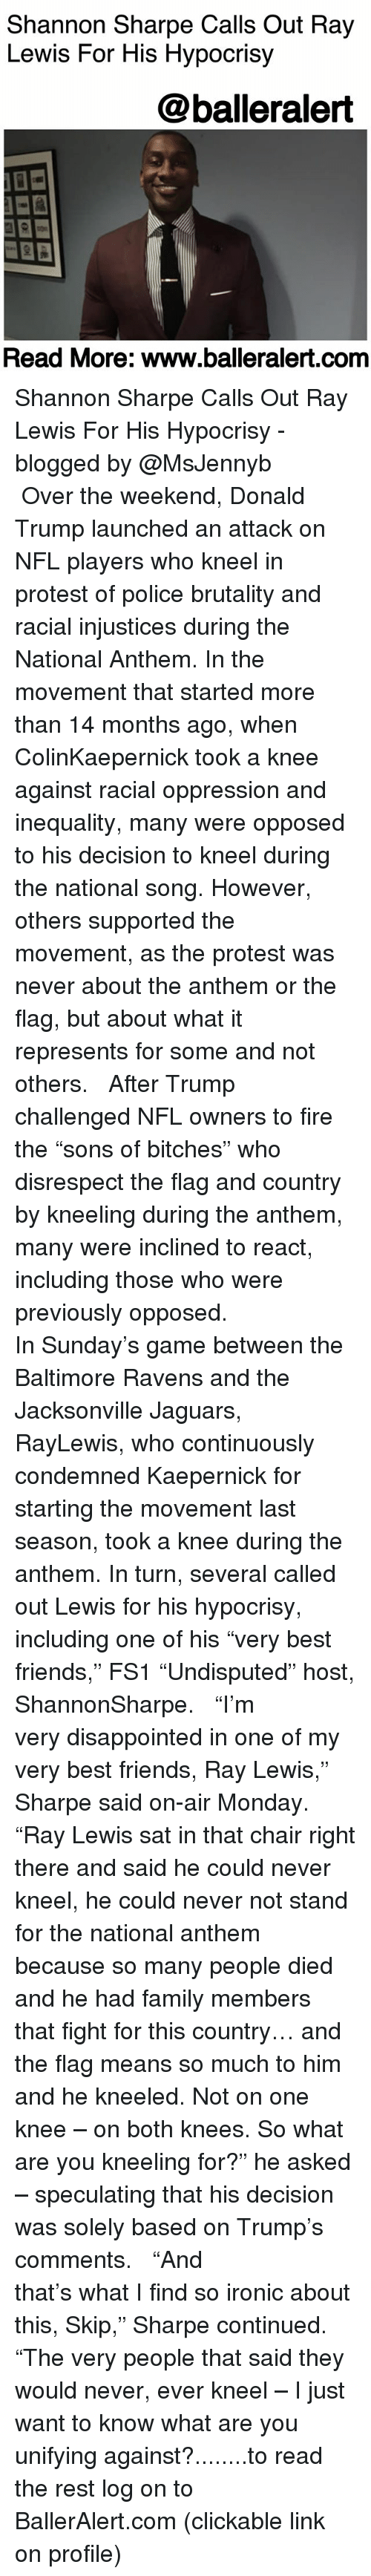 """Baltimore Ravens, Disappointed, and Donald Trump: Shannon Sharpe Calls Out Ray  Lewis For His Hypocrisy  @balleralert  Read More: www.balleralert.conm Shannon Sharpe Calls Out Ray Lewis For His Hypocrisy - blogged by @MsJennyb ⠀⠀⠀⠀⠀⠀⠀ ⠀⠀⠀⠀⠀⠀⠀ Over the weekend, Donald Trump launched an attack on NFL players who kneel in protest of police brutality and racial injustices during the National Anthem. In the movement that started more than 14 months ago, when ColinKaepernick took a knee against racial oppression and inequality, many were opposed to his decision to kneel during the national song. However, others supported the movement, as the protest was never about the anthem or the flag, but about what it represents for some and not others. ⠀⠀⠀⠀⠀⠀⠀ ⠀⠀⠀⠀⠀⠀⠀ After Trump challenged NFL owners to fire the """"sons of bitches"""" who disrespect the flag and country by kneeling during the anthem, many were inclined to react, including those who were previously opposed. ⠀⠀⠀⠀⠀⠀⠀ ⠀⠀⠀⠀⠀⠀⠀ In Sunday's game between the Baltimore Ravens and the Jacksonville Jaguars, RayLewis, who continuously condemned Kaepernick for starting the movement last season, took a knee during the anthem. In turn, several called out Lewis for his hypocrisy, including one of his """"very best friends,"""" FS1 """"Undisputed"""" host, ShannonSharpe. ⠀⠀⠀⠀⠀⠀⠀ ⠀⠀⠀⠀⠀⠀⠀ """"I'm very disappointed in one of my very best friends, Ray Lewis,"""" Sharpe said on-air Monday. """"Ray Lewis sat in that chair right there and said he could never kneel, he could never not stand for the national anthem because so many people died and he had family members that fight for this country… and the flag means so much to him and he kneeled. Not on one knee – on both knees. So what are you kneeling for?"""" he asked – speculating that his decision was solely based on Trump's comments. ⠀⠀⠀⠀⠀⠀⠀ ⠀⠀⠀⠀⠀⠀⠀ """"And that's what I find so ironic about this, Skip,"""" Sharpe continued. """"The very people that said they would never, ever kneel – I just want to know what are you unify"""